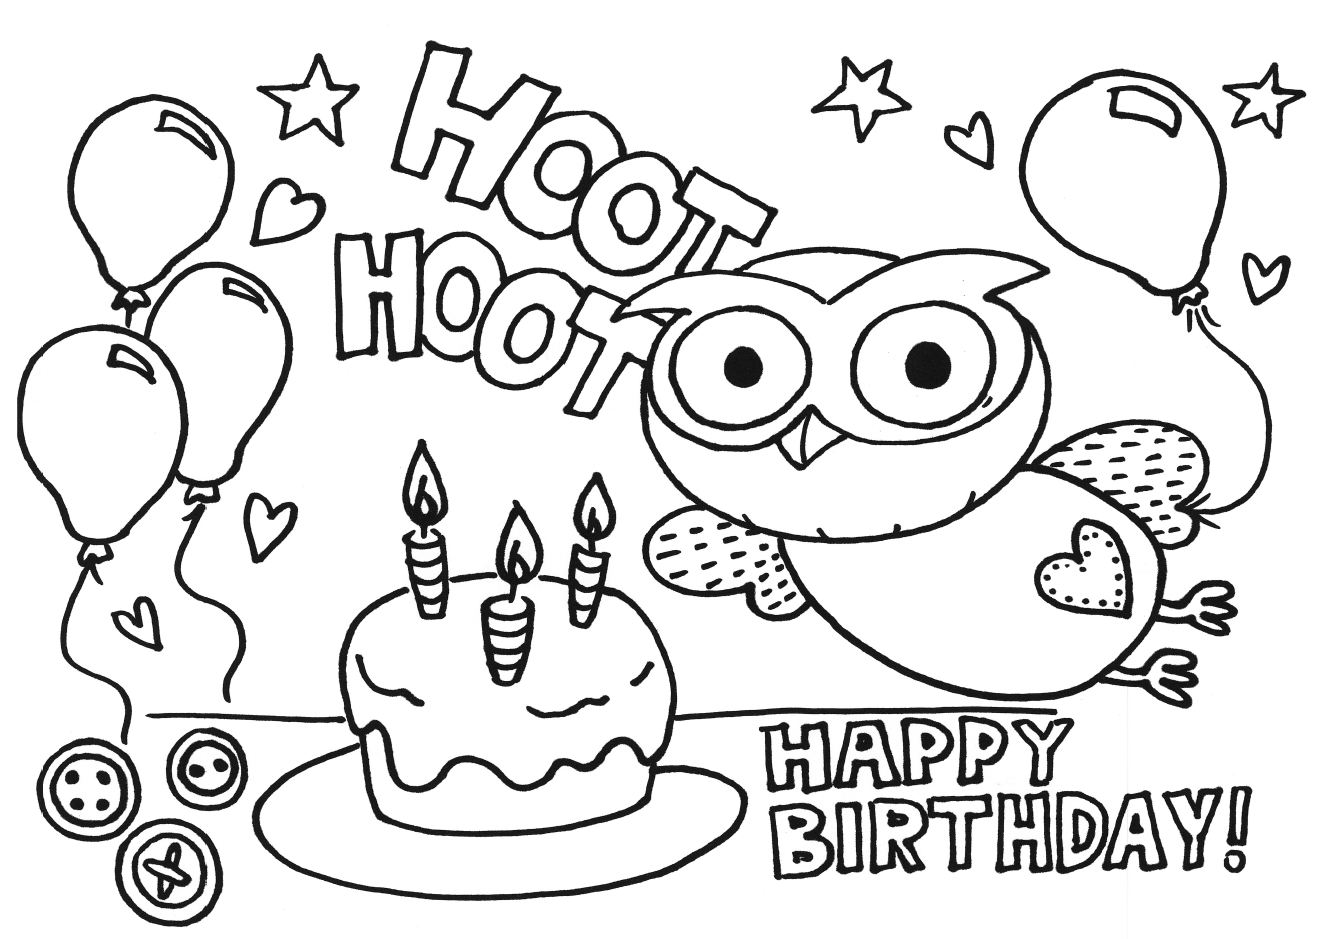 Happy Birthday Daddy We Love You 7 likewise I Love My Brother Coloring Pages Sketch Templates as well Fathers Day Coloring Pages furthermore Hand Lettered Trick Or Treat Free Svg Cut File besides Yu Gi Oh Coloring Pages. on happy birthday bear